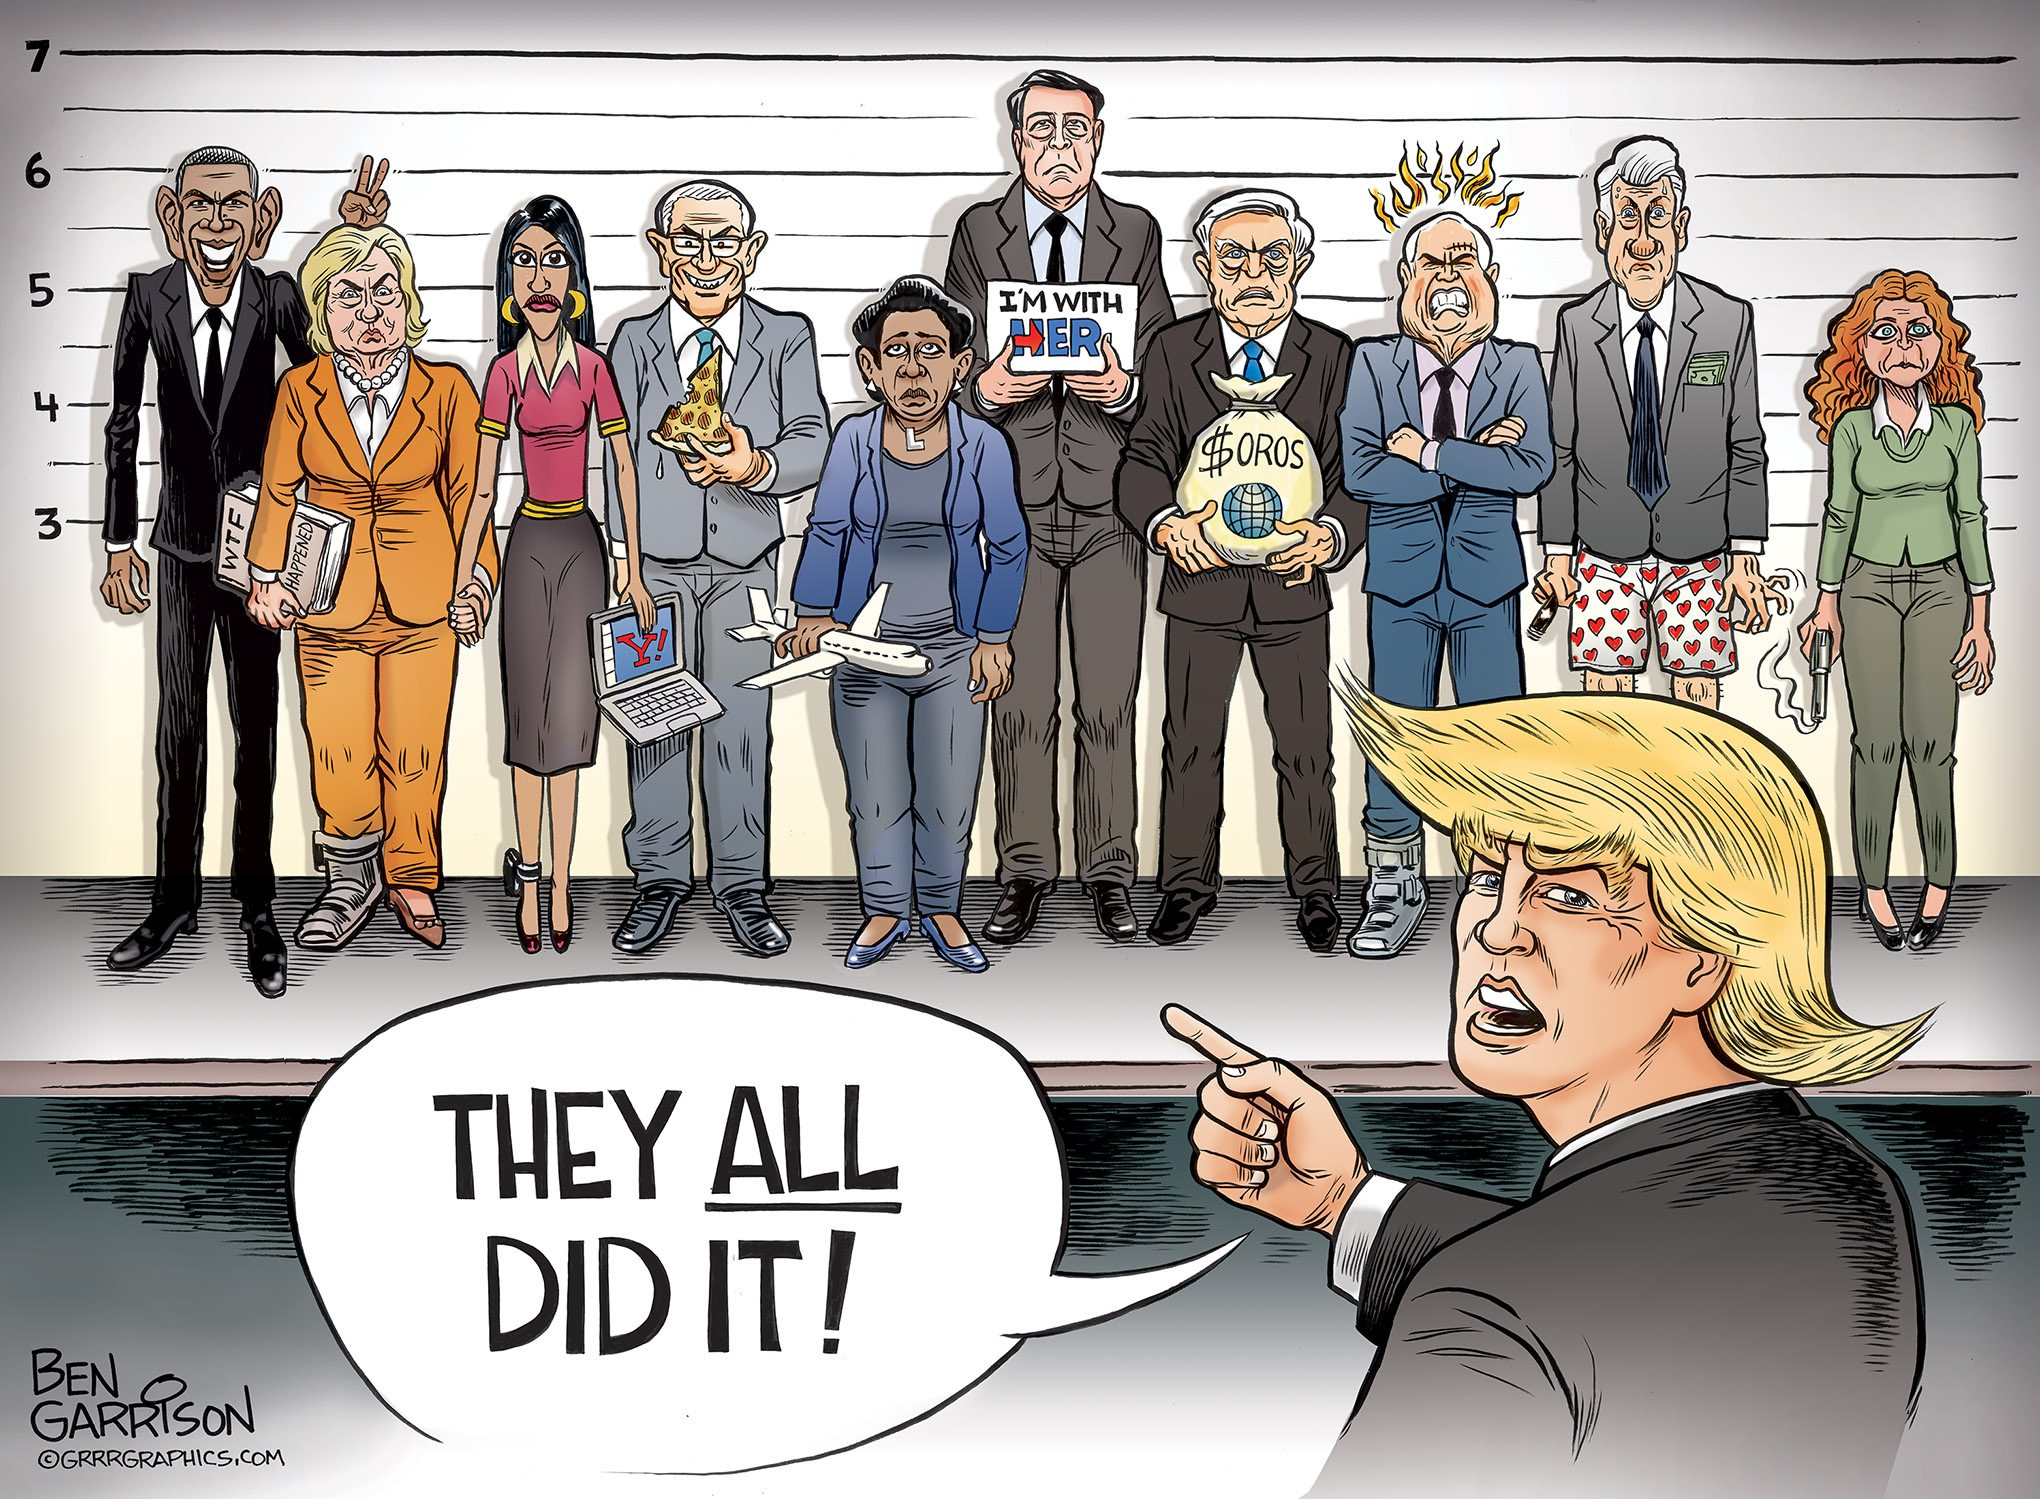 The Deep State Lineup cartoon by Ben Garrison